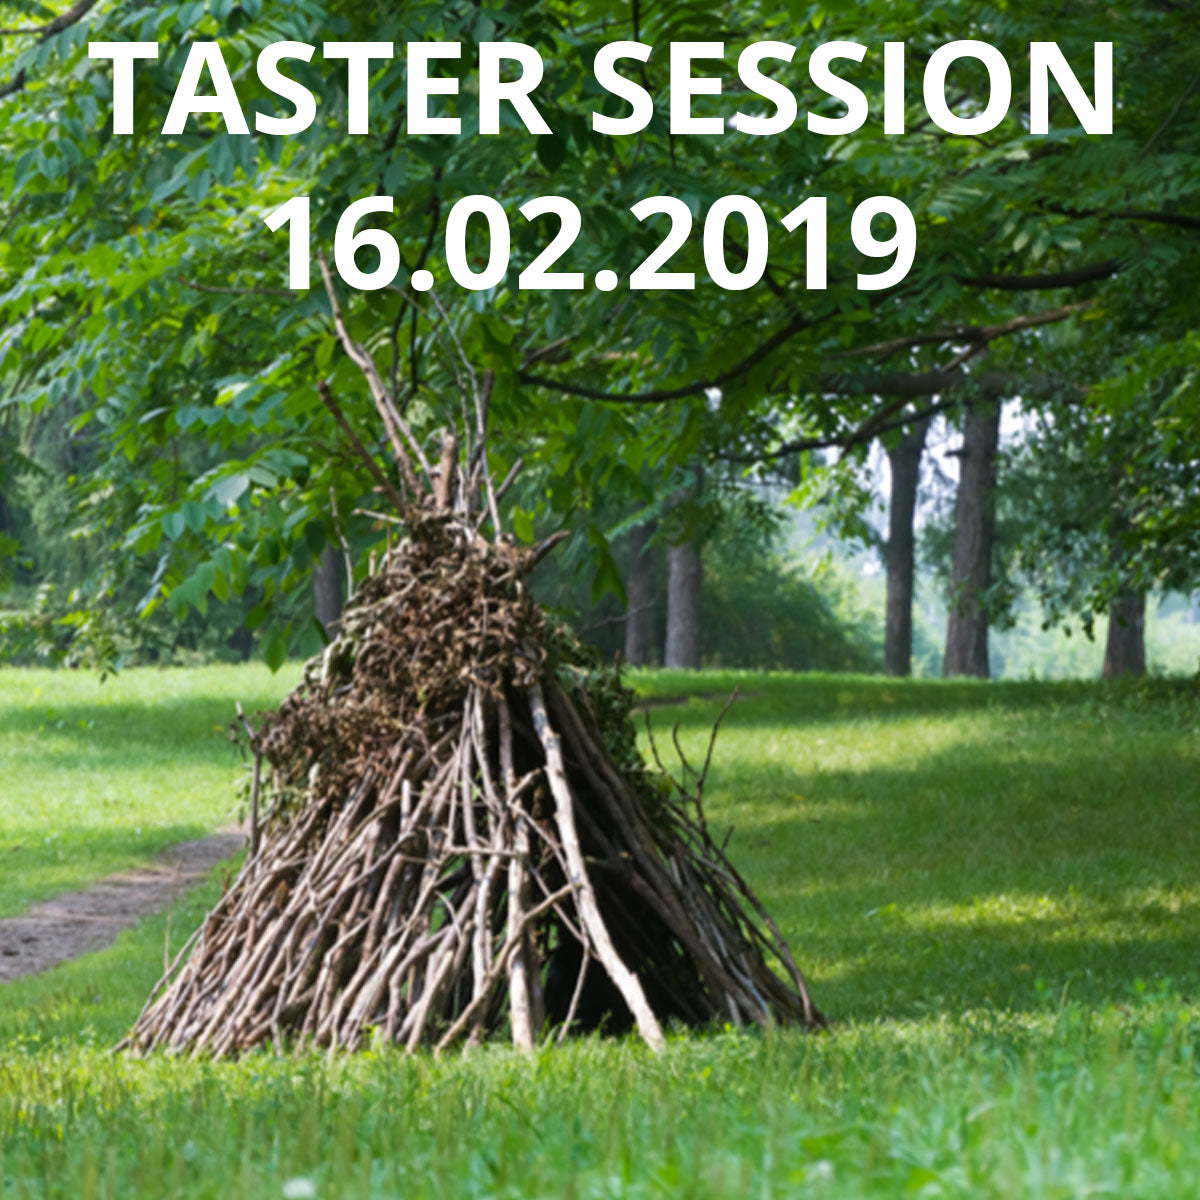 Forest School Taster Session 16-02-2019